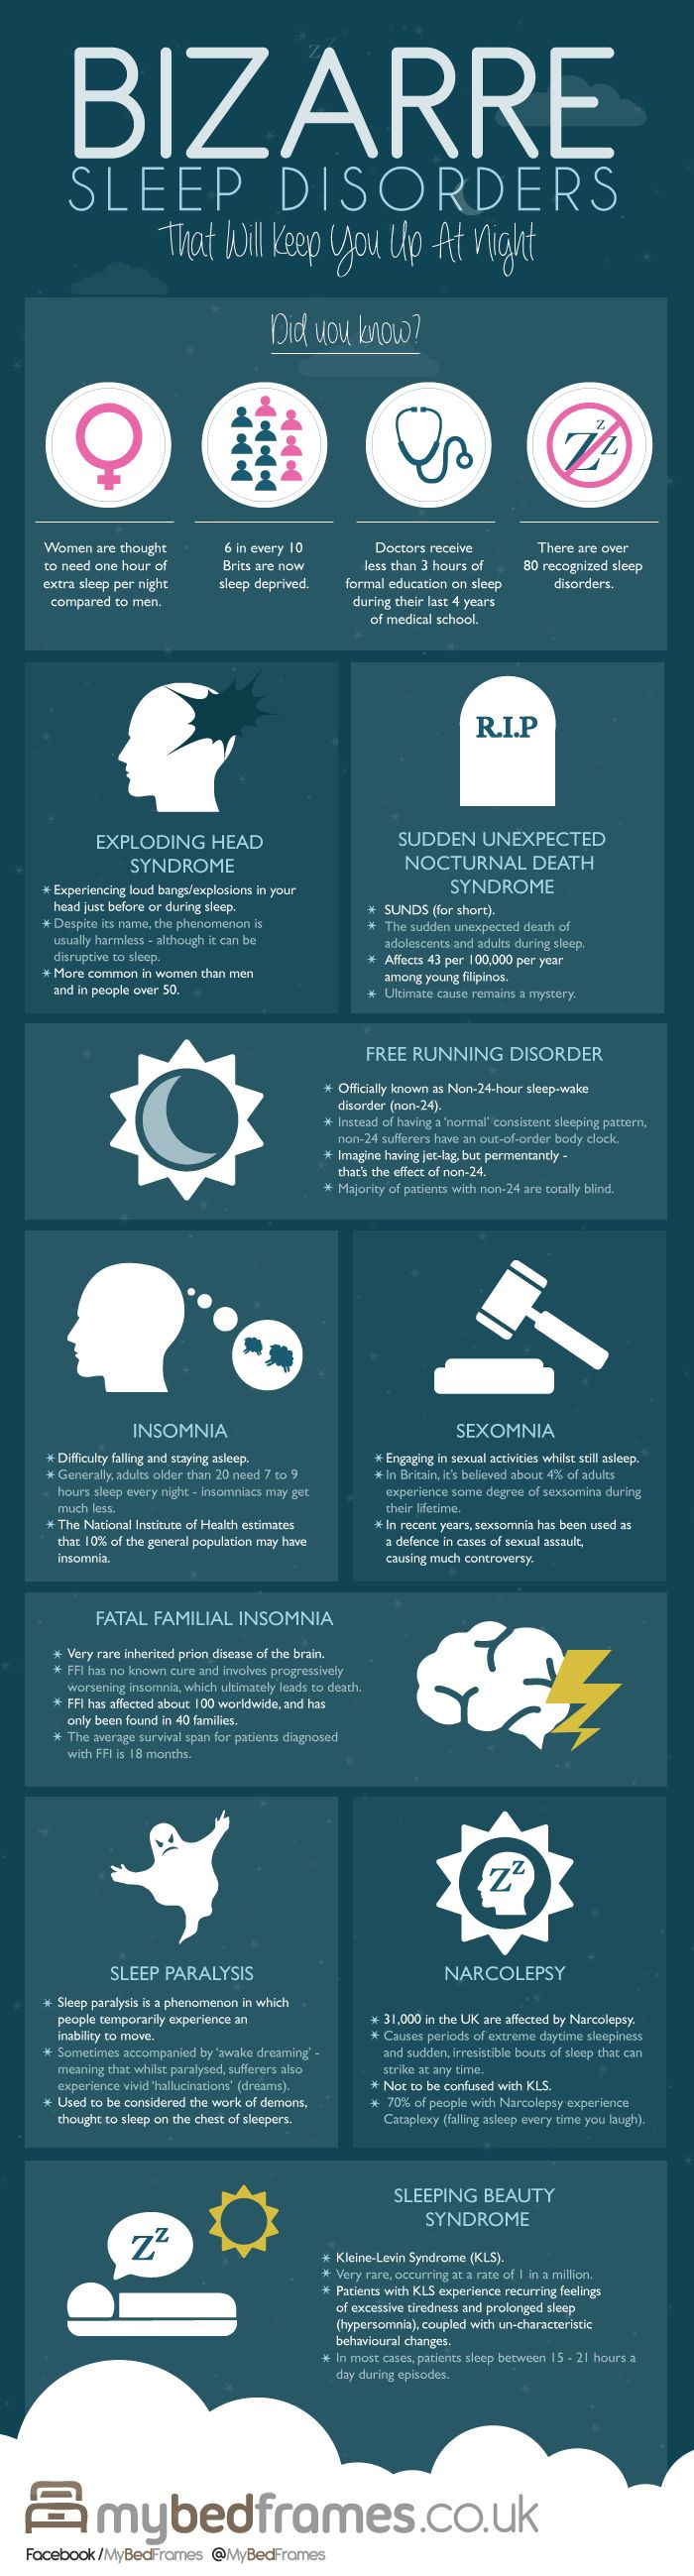 Bizarre sleep disorders (that will keep you up at night) #infographic #sleepdisorders